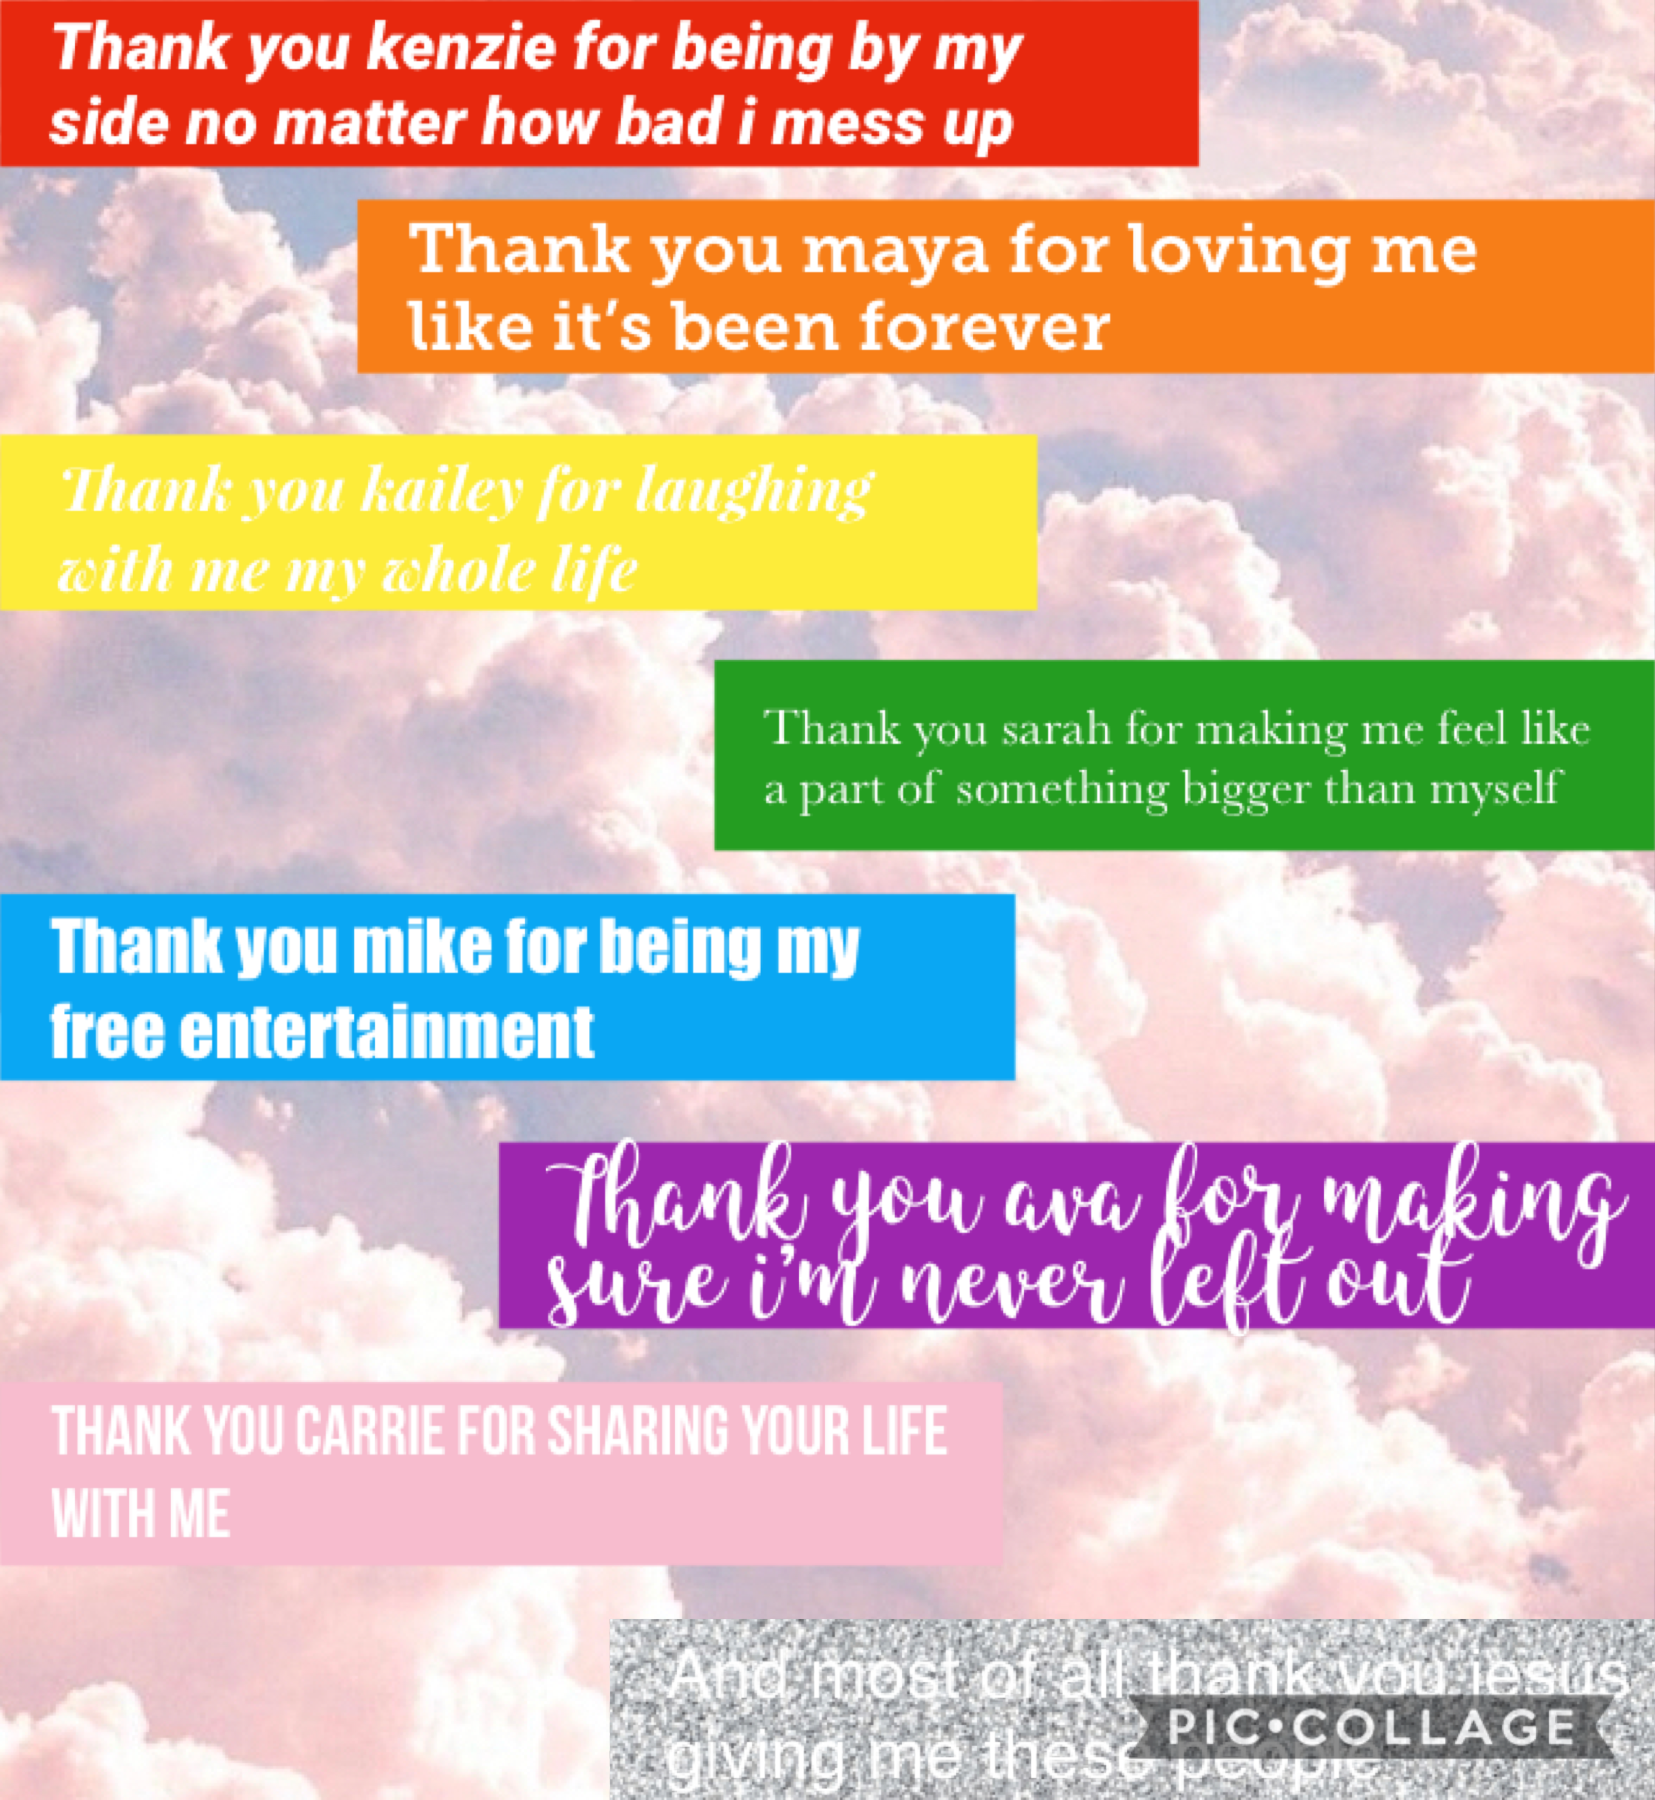 got this idea from -iiCorgiDreams go heck her out and make sure to say thank you to the good people in your life.